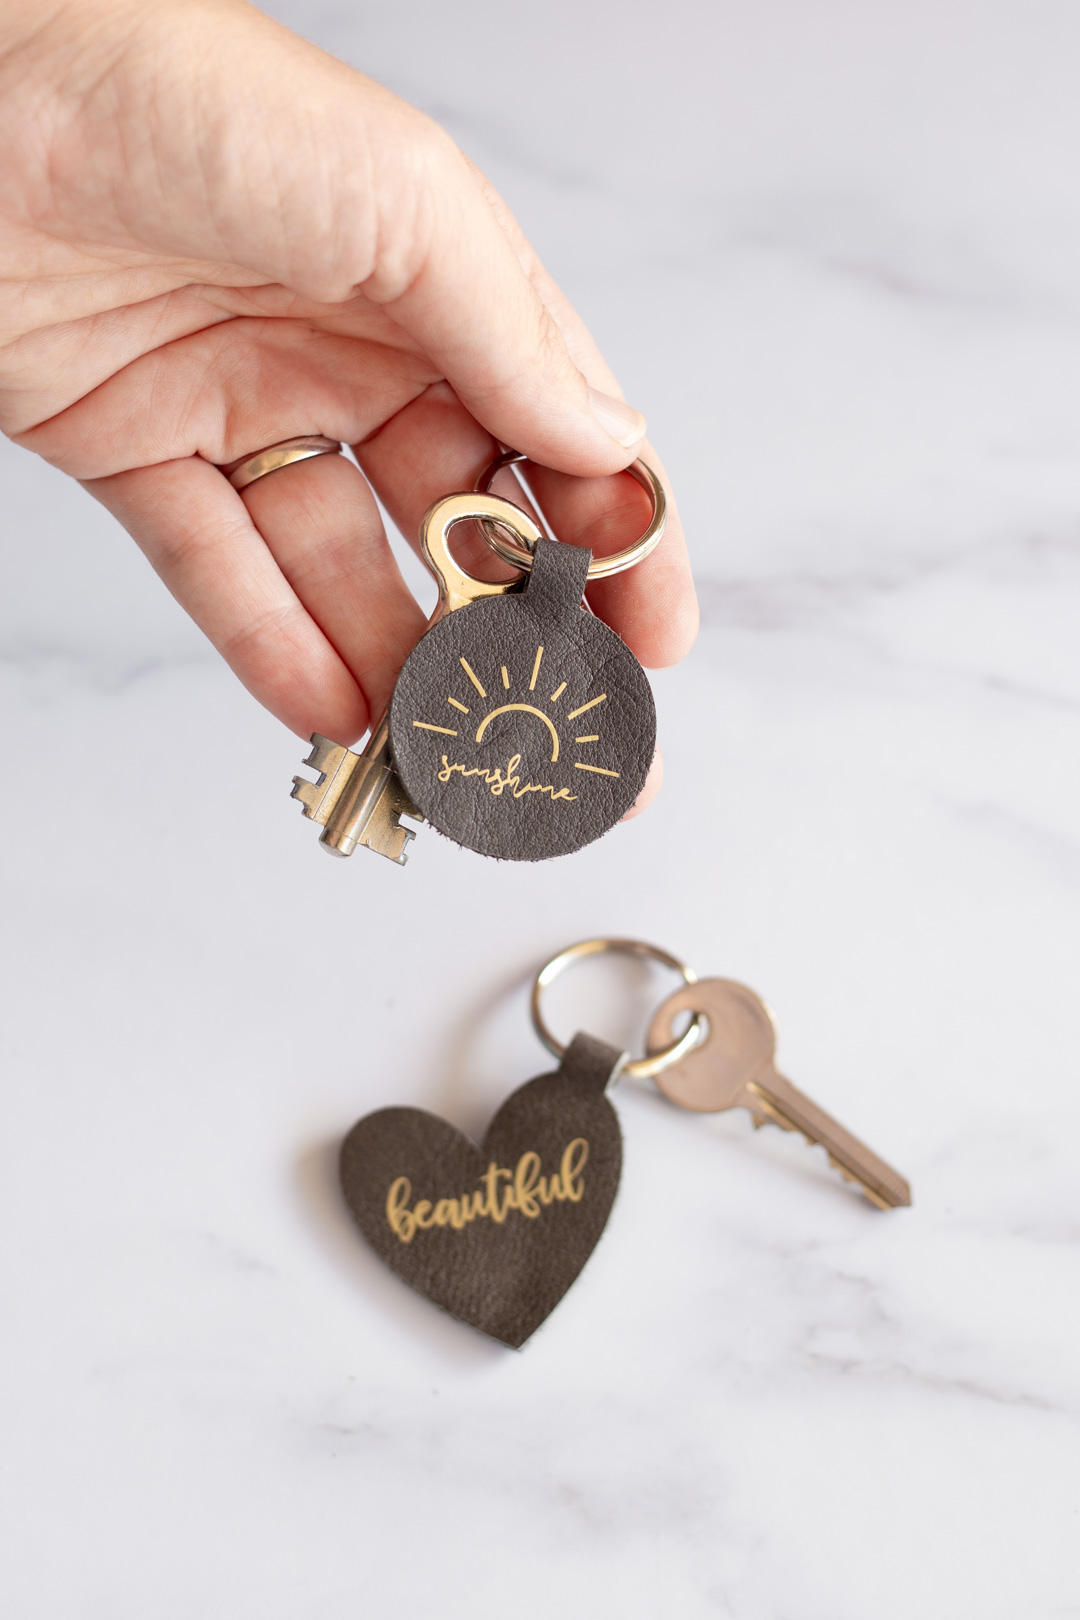 Leather Keyrings made with Cricut Maker and iron-on heat transfer vinyl. Easy deign including free SVG, PNG and project link